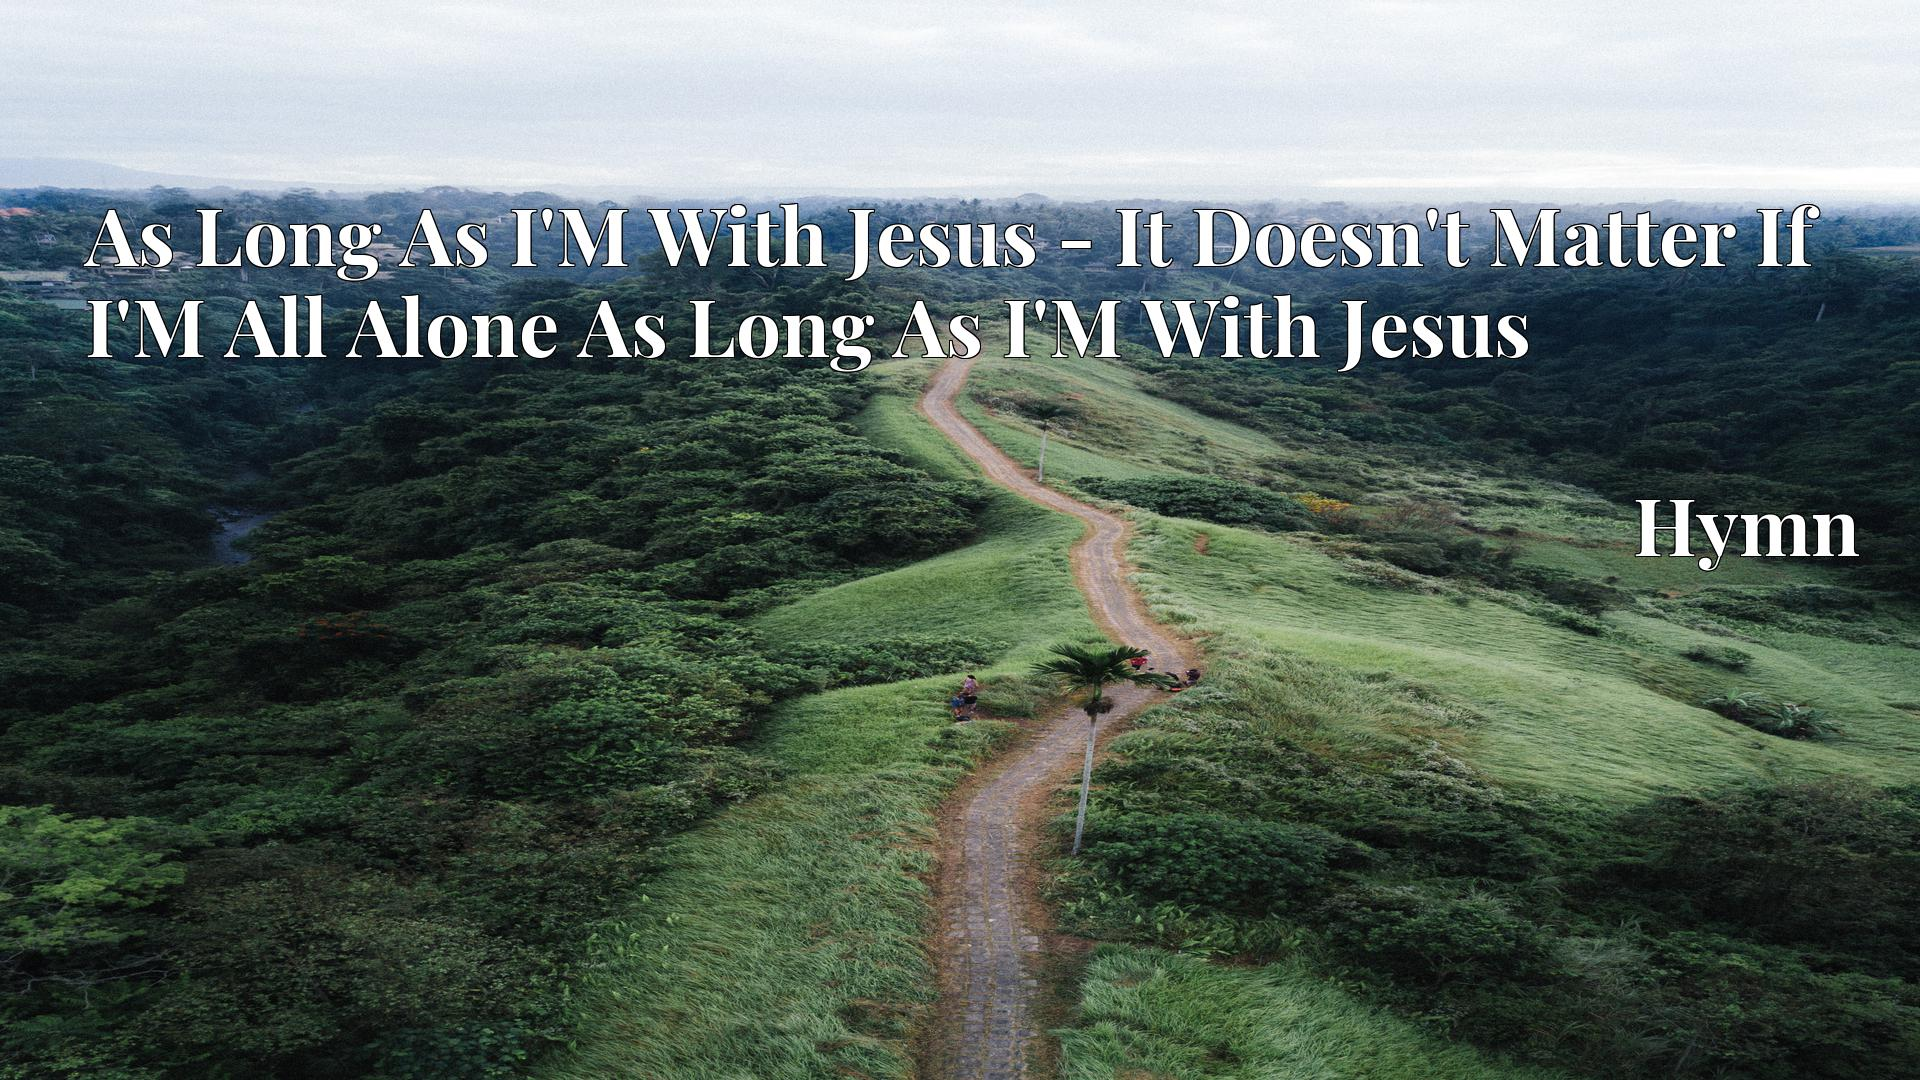 As Long As I'M With Jesus - It Doesn't Matter If I'M All Alone As Long As I'M With Jesus - Hymn